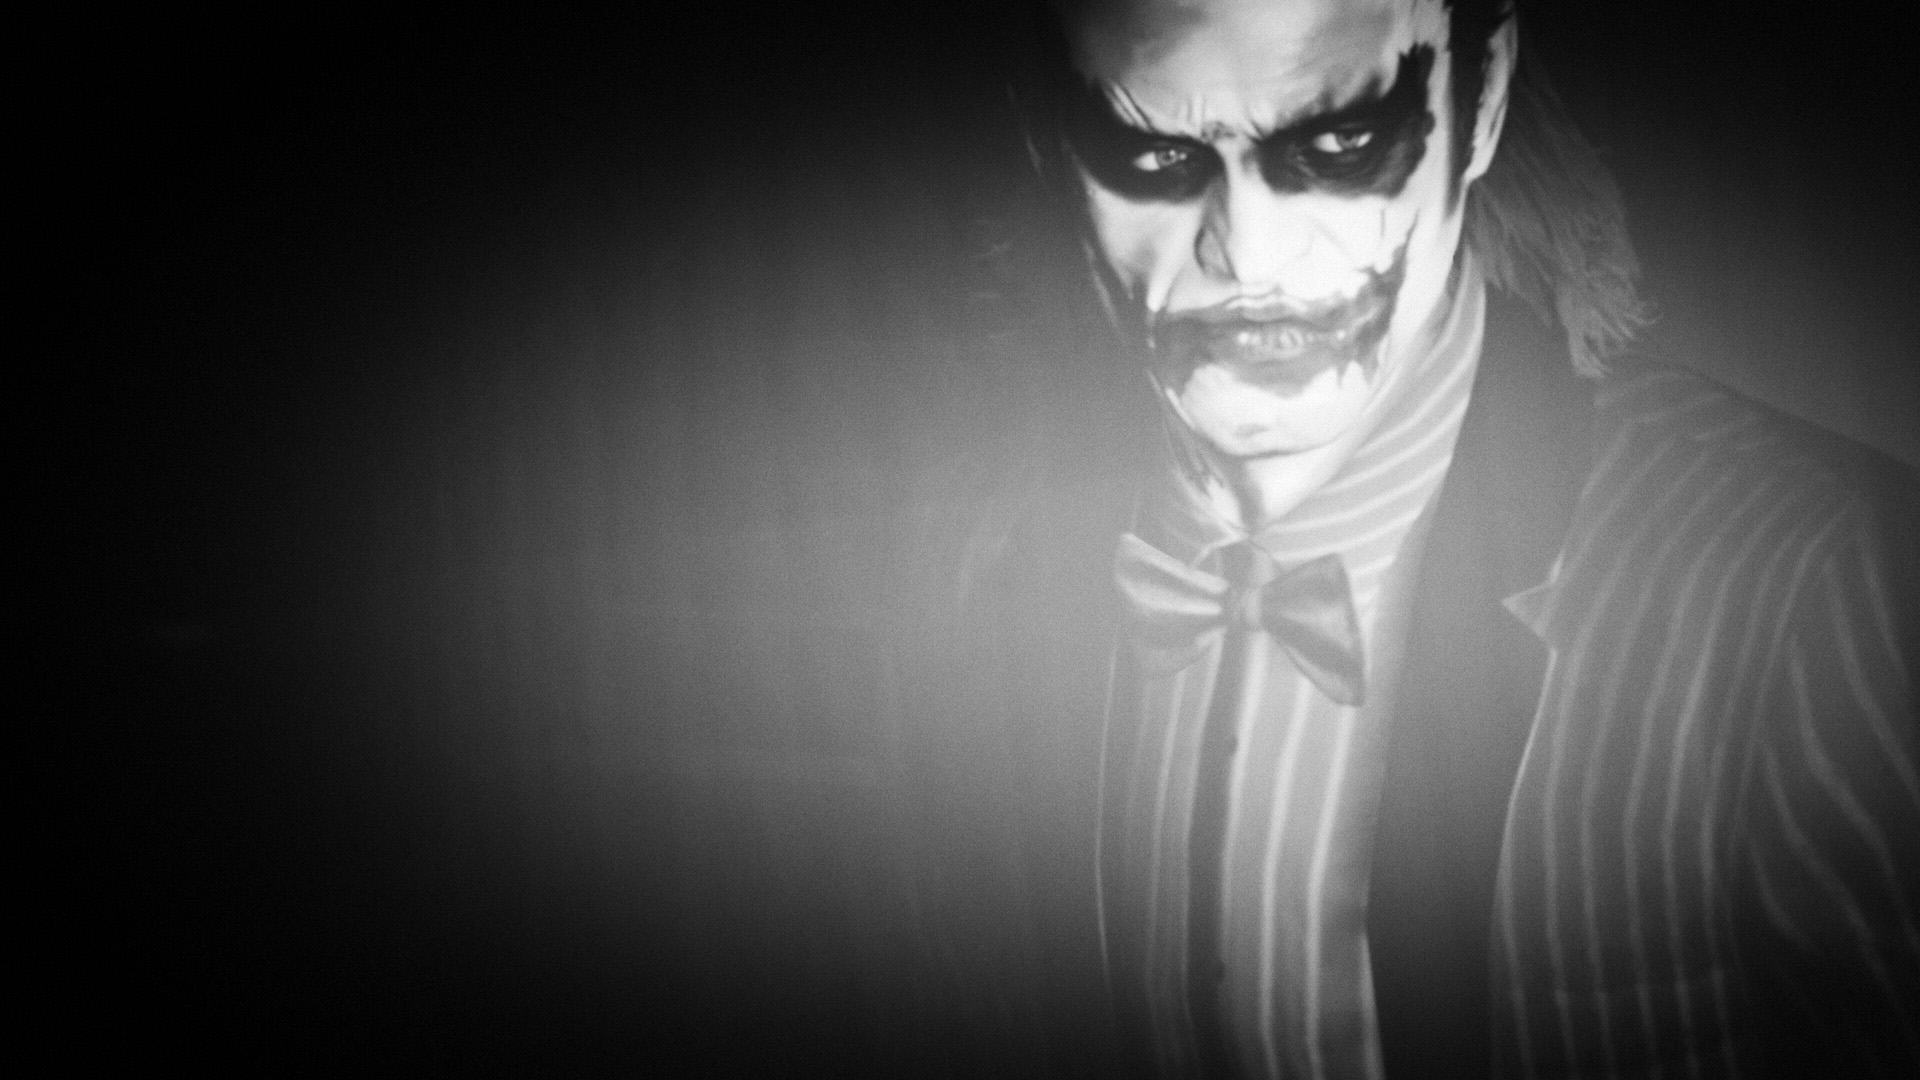 These Photos Prove Trevor From GTA Should Be The Next Joker 55b7499d1e88f